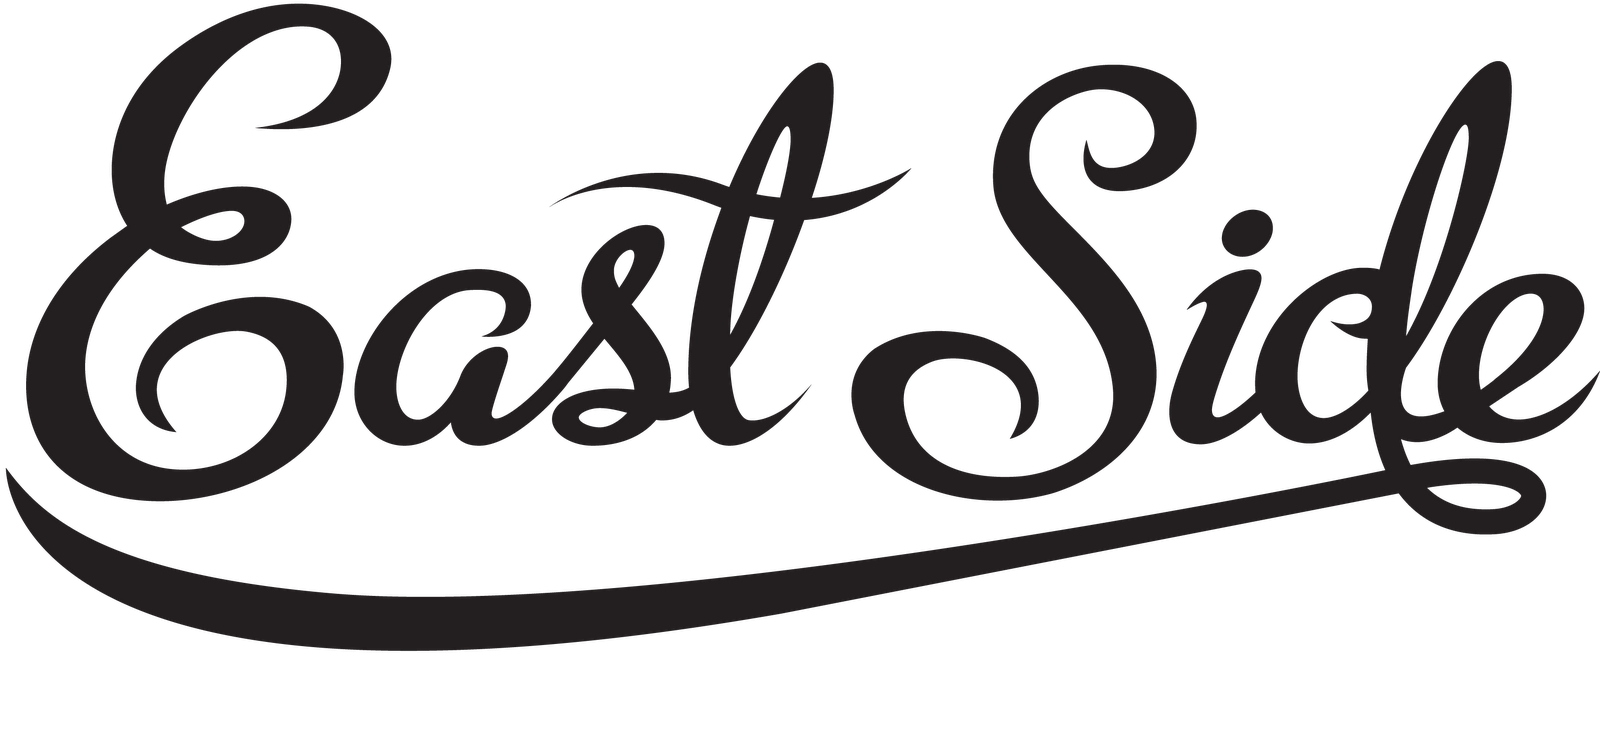 Pin east side logo on pinterest